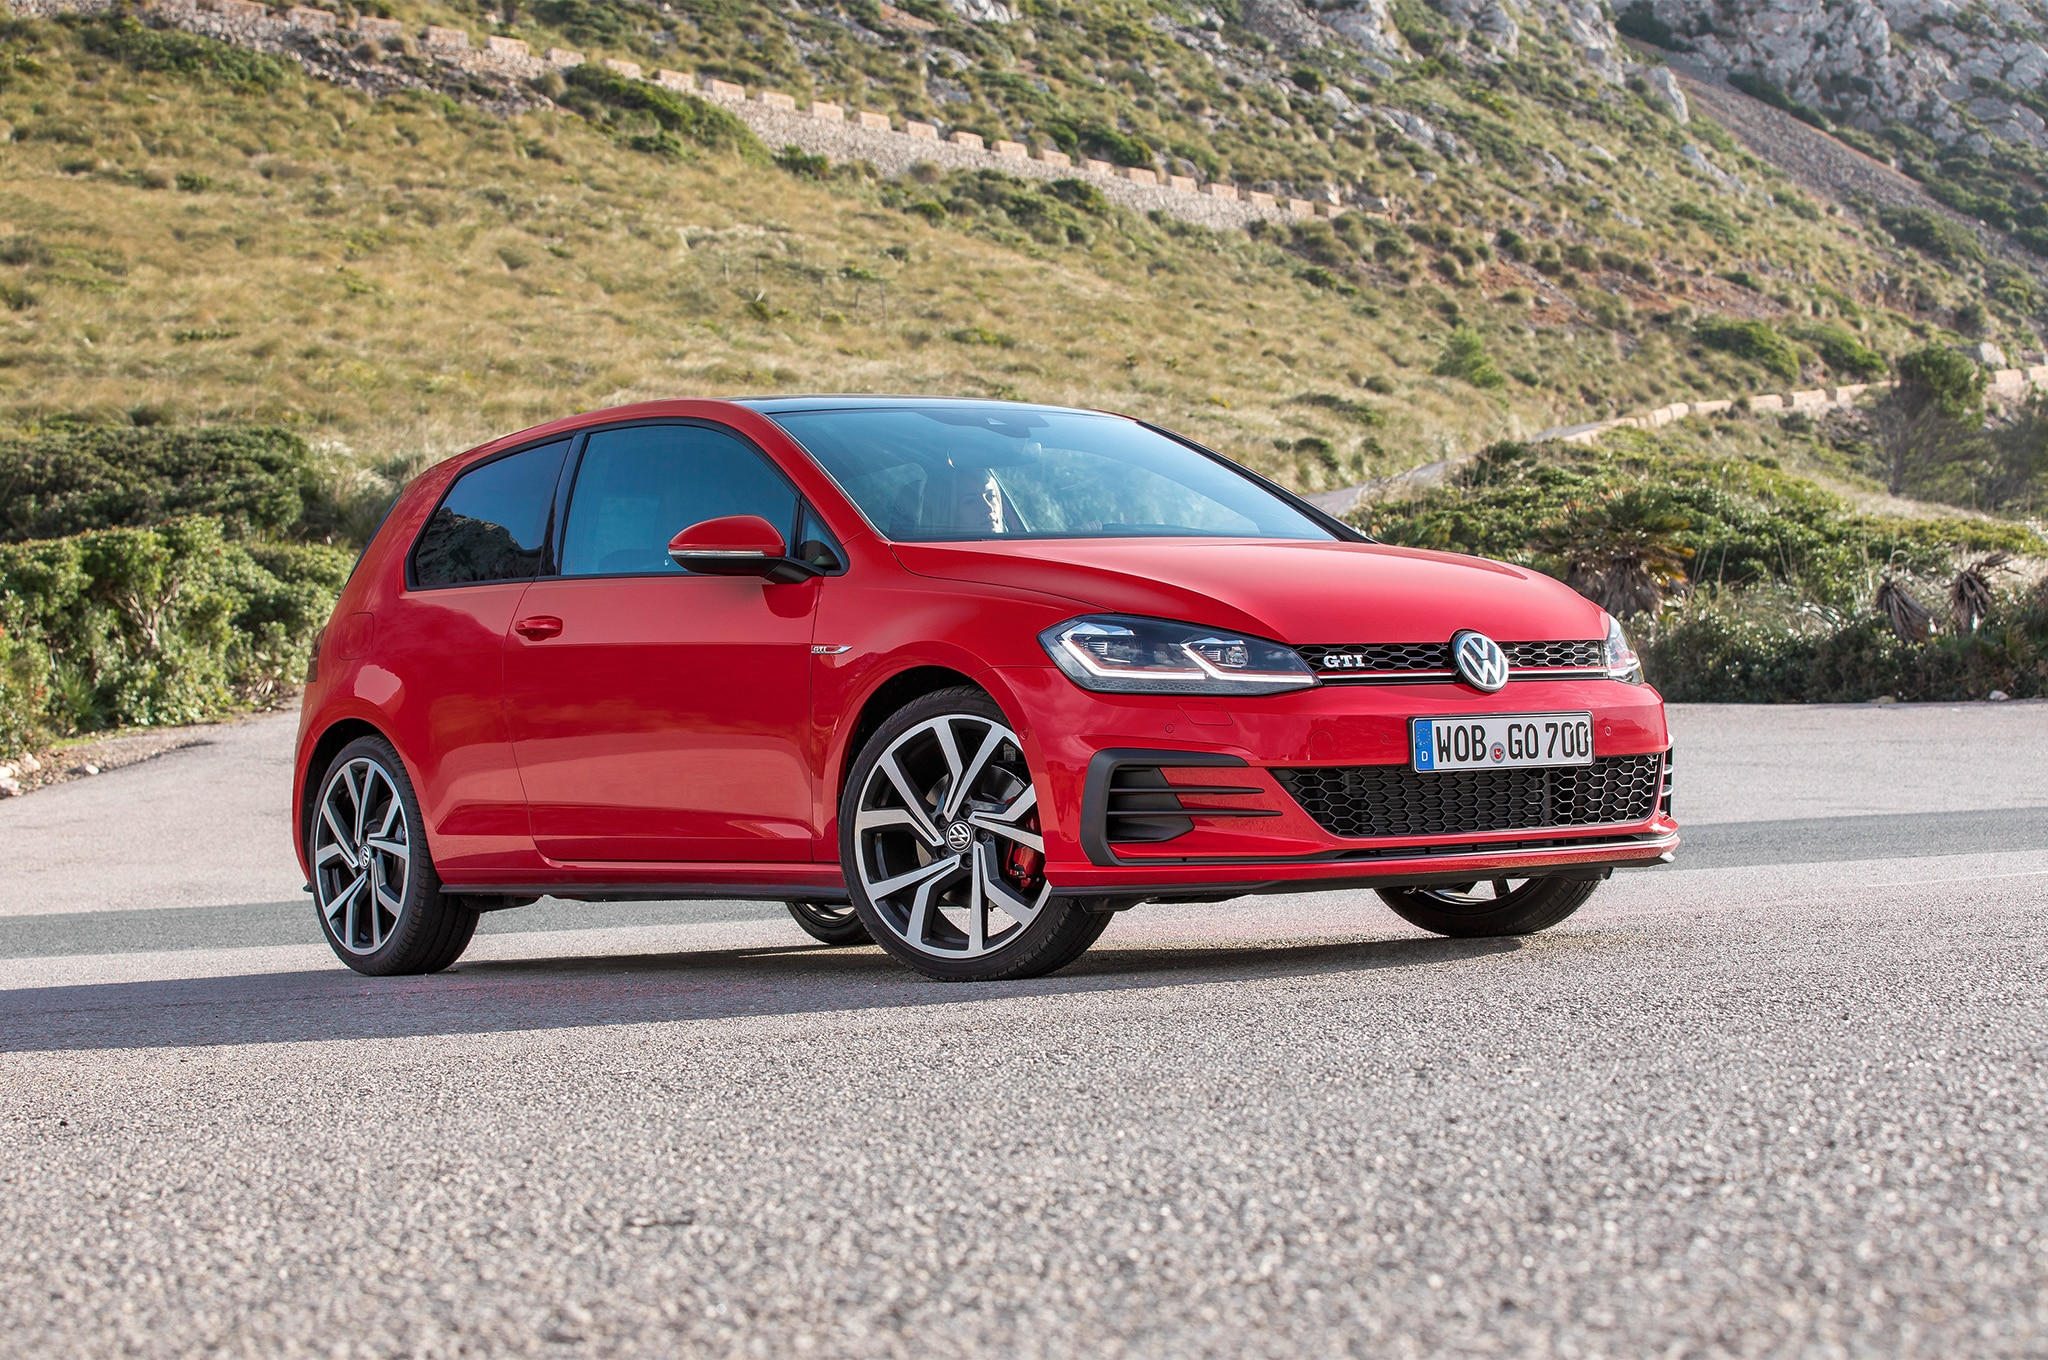 2018 Volkswagen Gti Review >> 2018 Volkswagen Golf GTI European Spec | Automobile Magazine